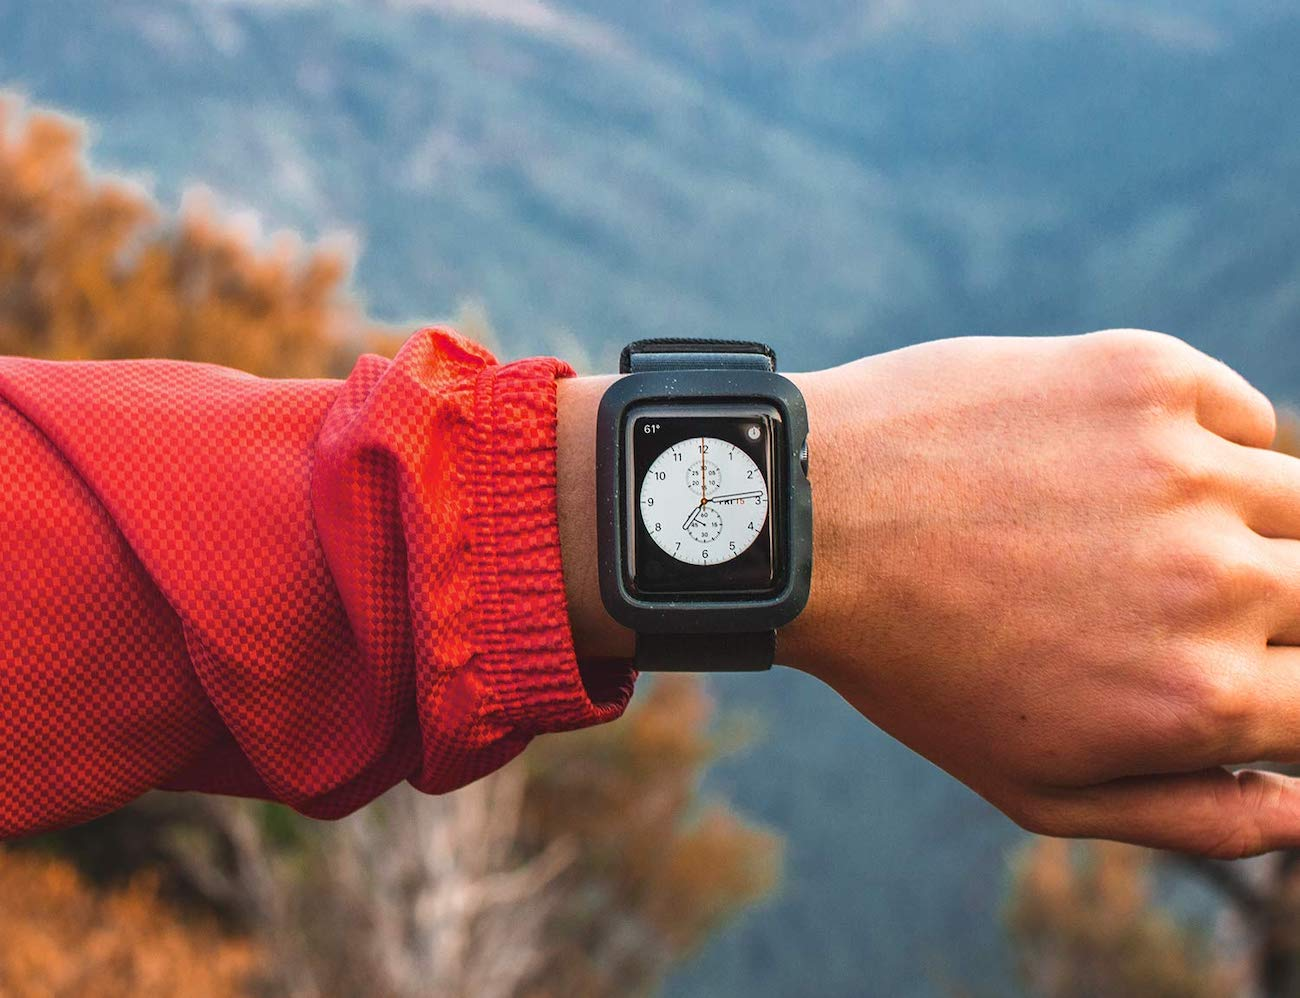 Lander Moab Apple Watch Case and Band protects your watch on adventures